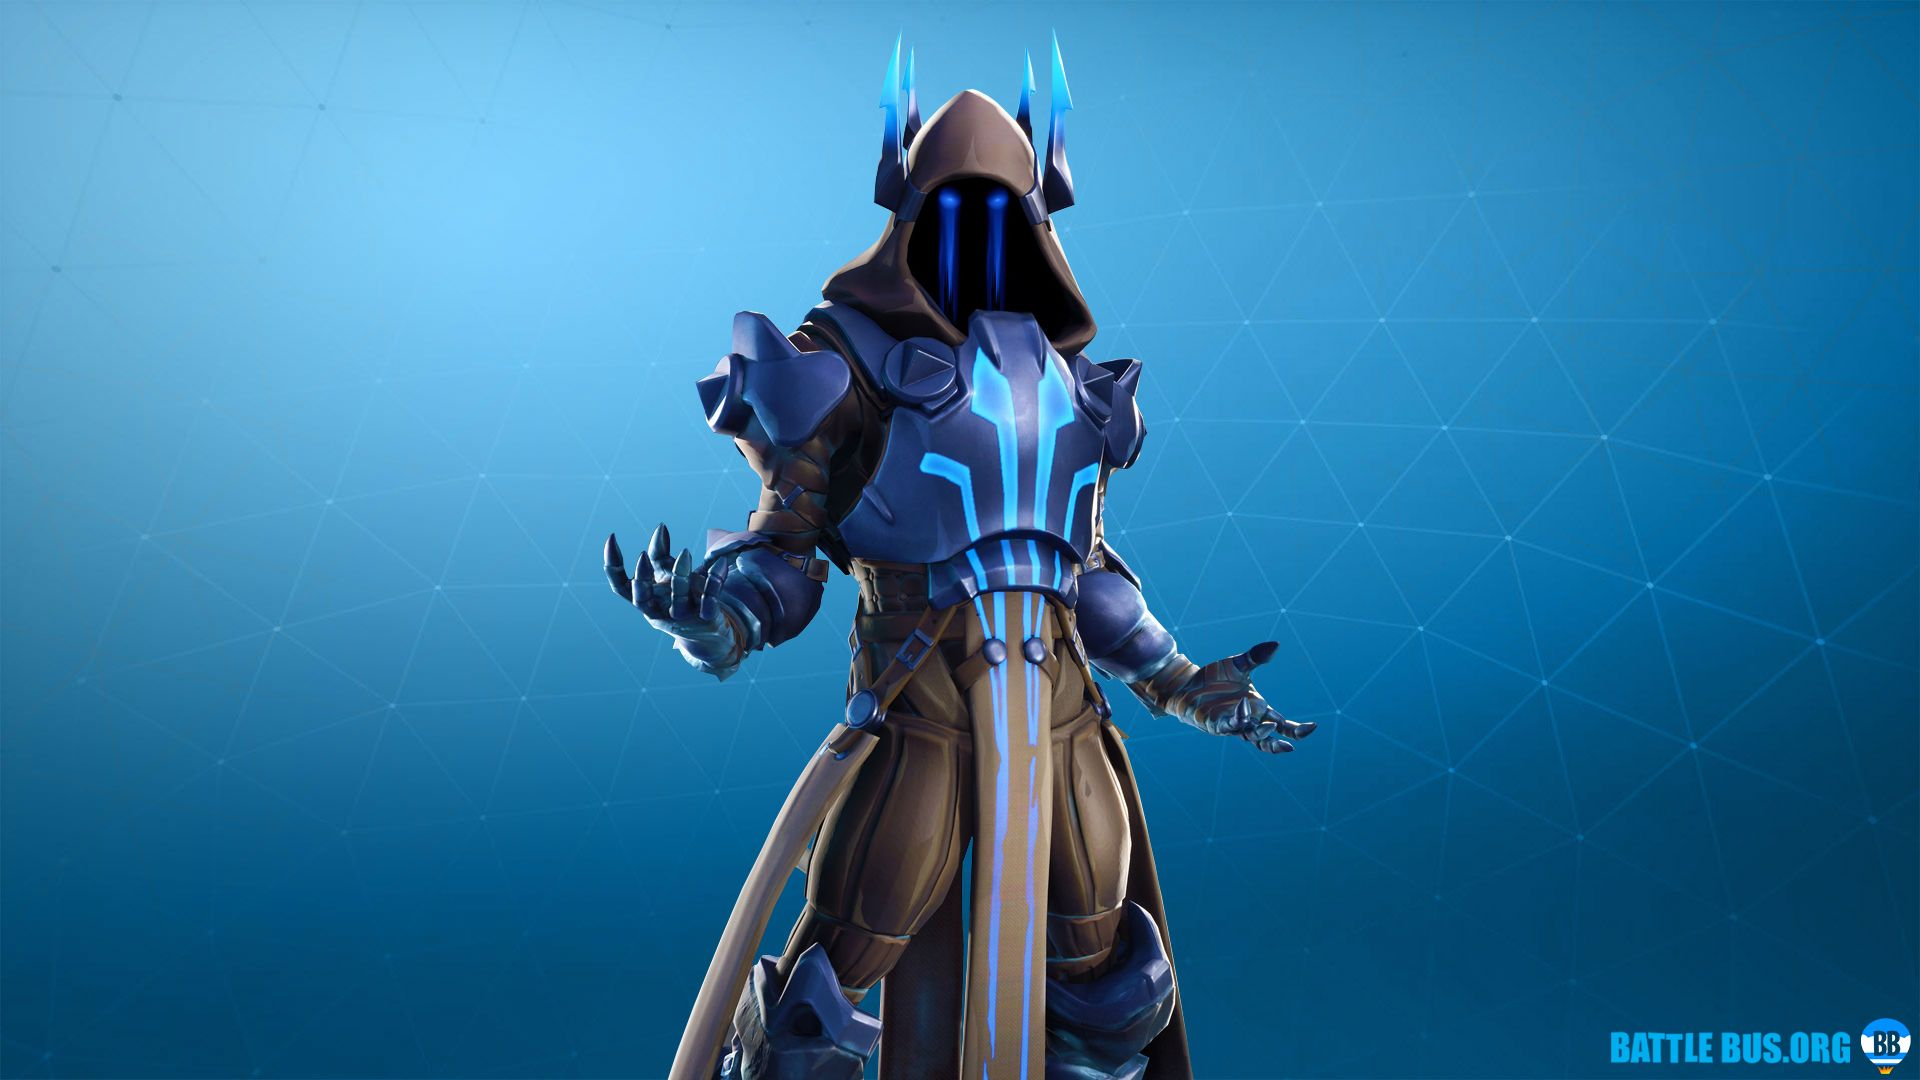 Ice King Fortnite Wallpapers - Top Free Ice King Fortnite ...